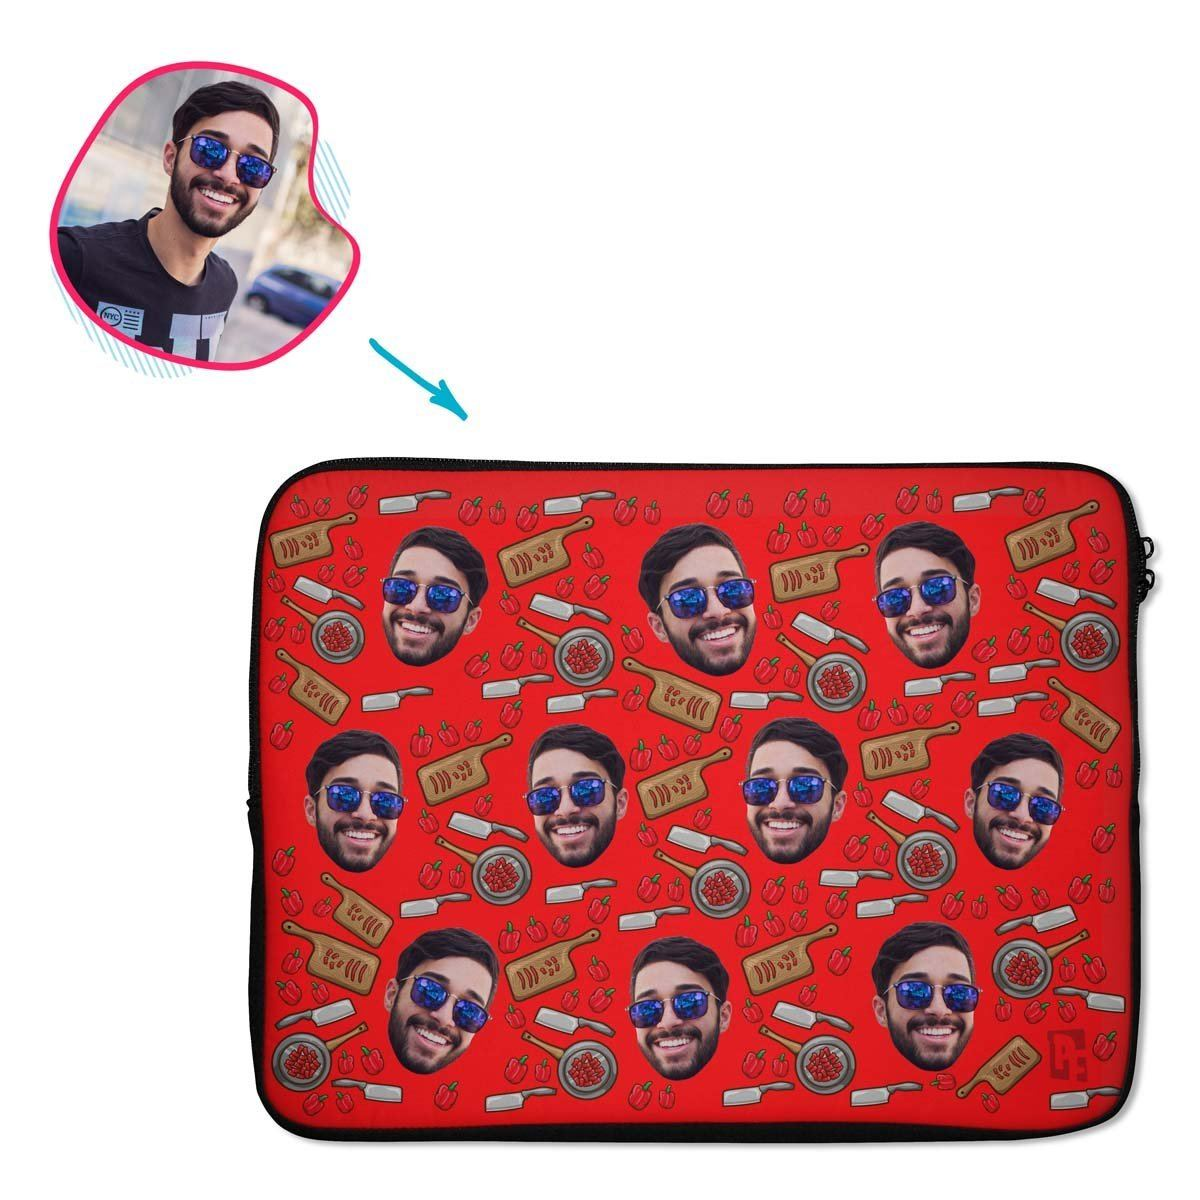 red Сooking laptop sleeve personalized with photo of face printed on them